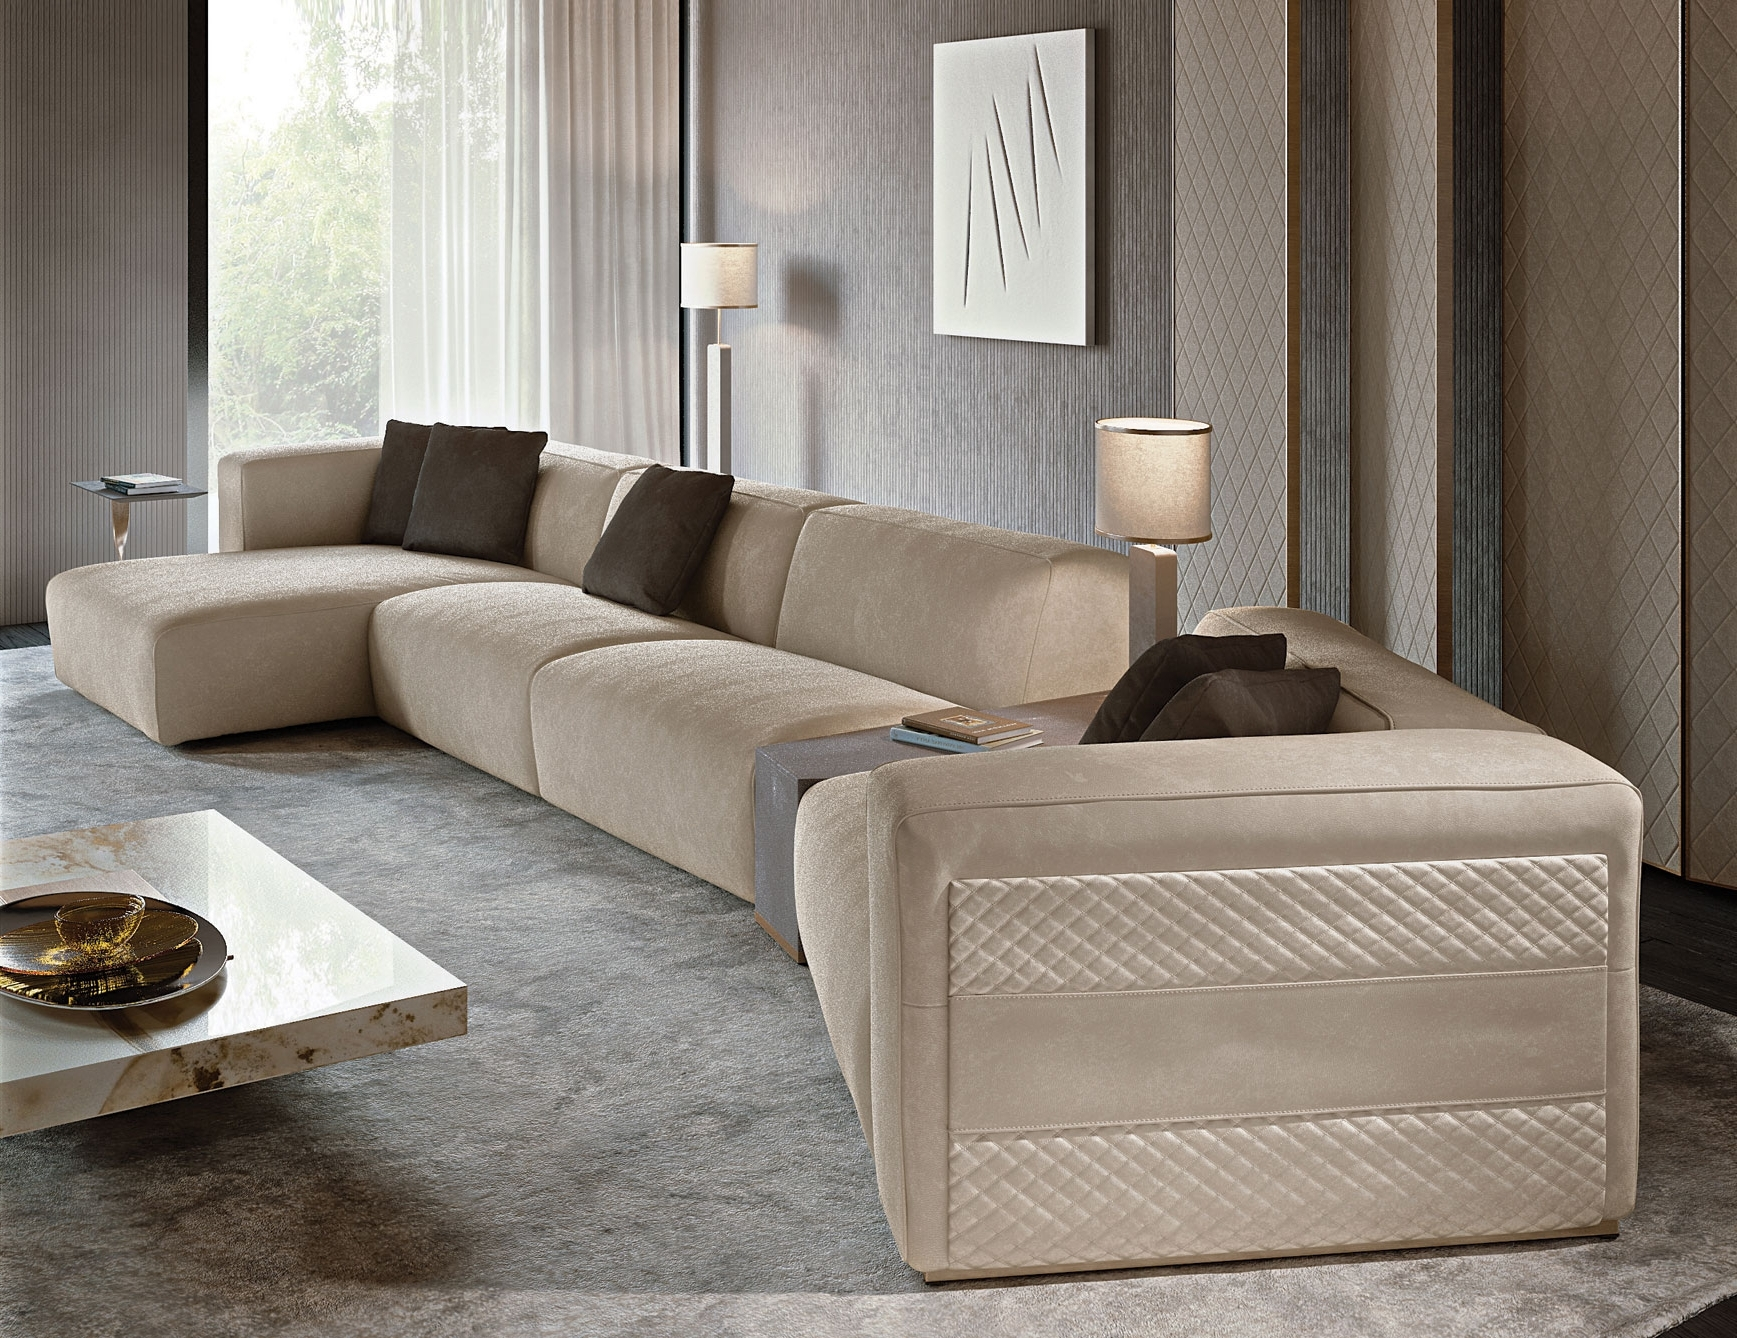 Current Nella Vetrina Rugiano Freud Sectional Sofa In Suede In High End Sectional Sofas (View 2 of 20)